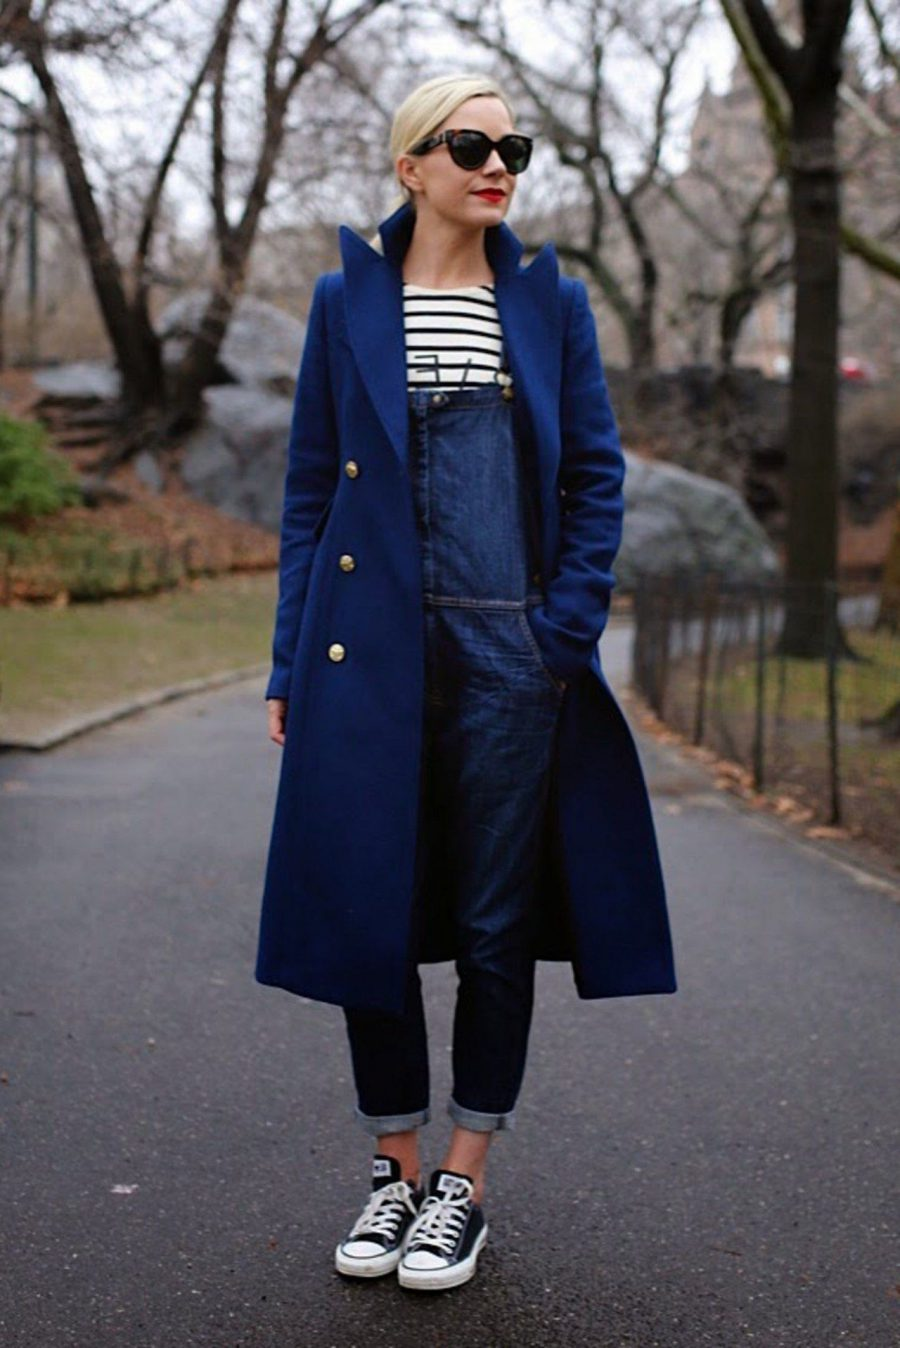 Best Winter Coats For Women 2019